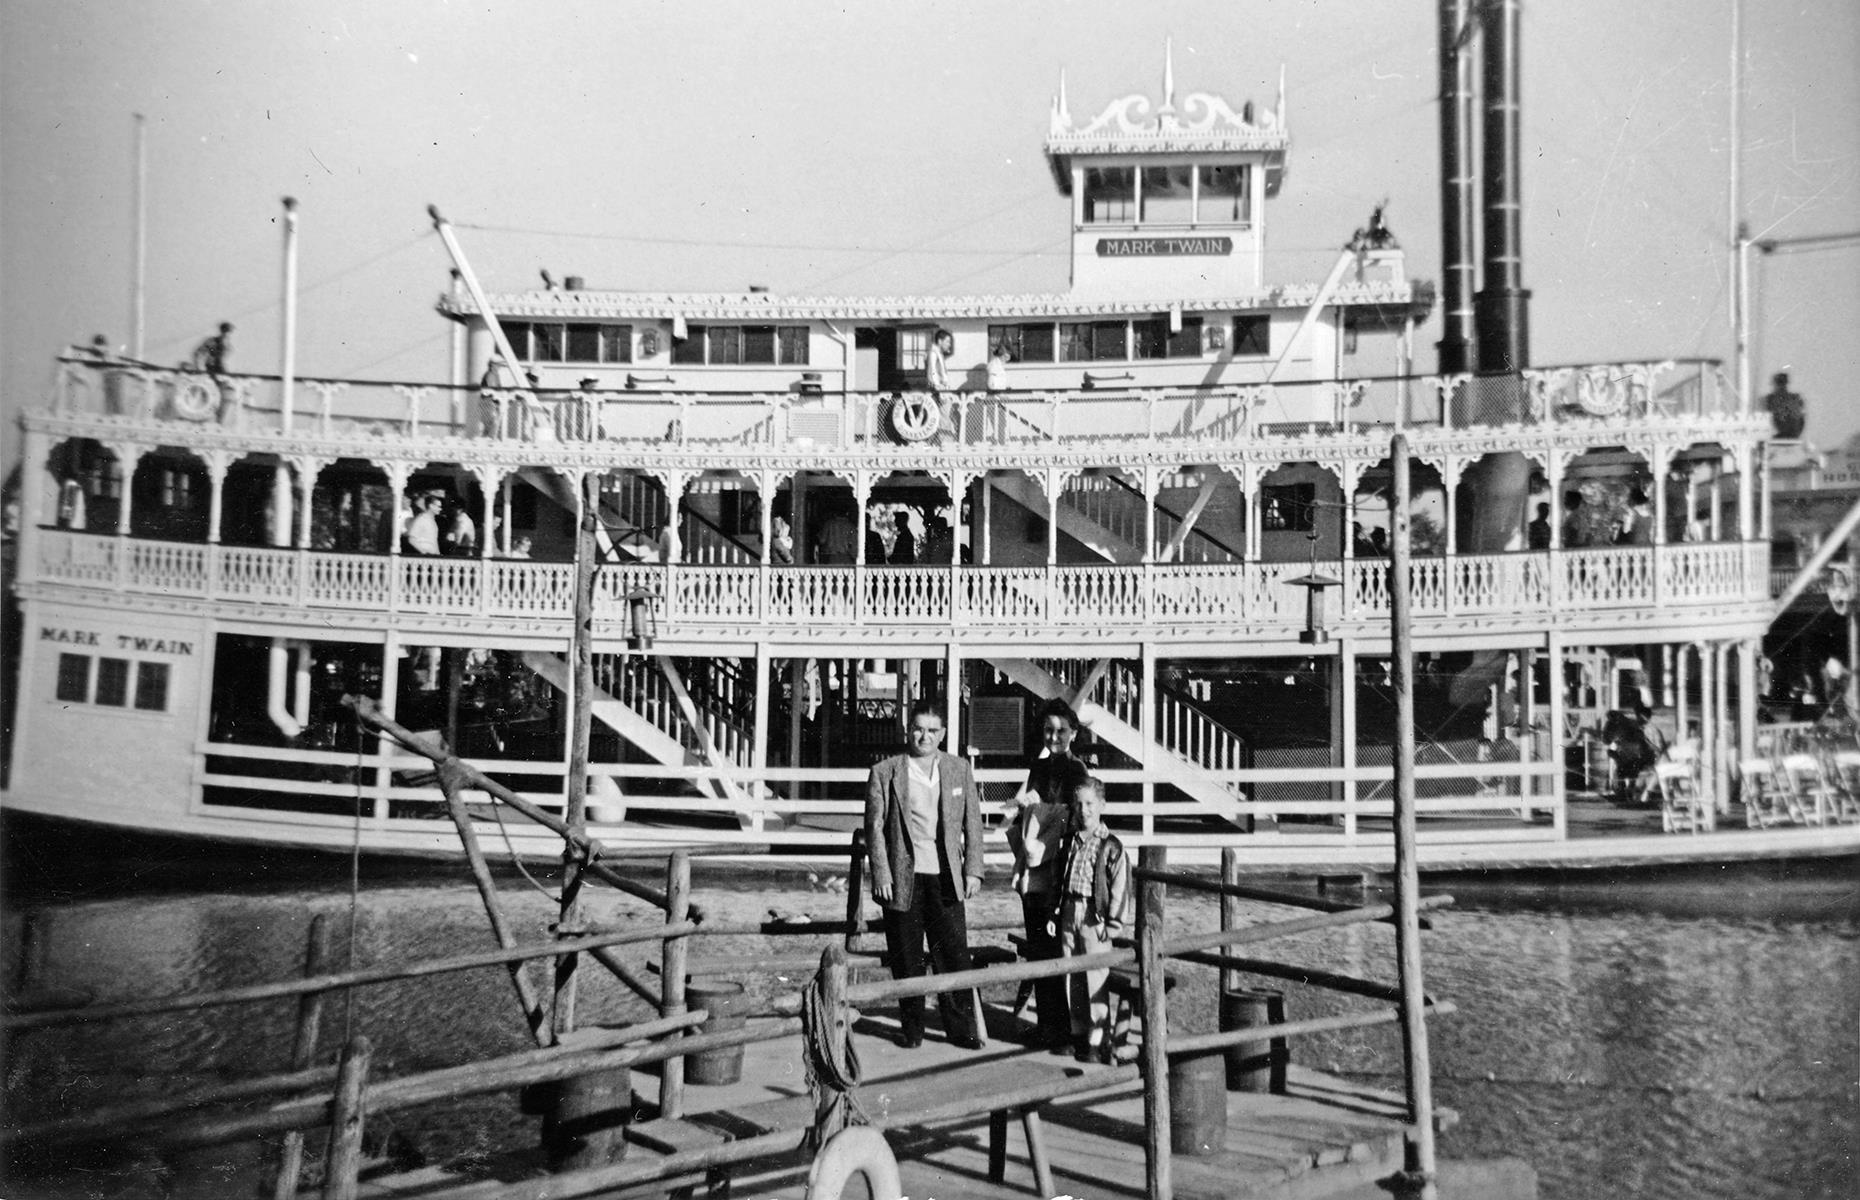 Slide 10 of 38: Another of Frontierland's early attractions was the Mark Twain Riverboat, which still plows Disneyland Park's rivers today. Here the paddleboat, named for the celebrated American writer, is seen from Tom Sawyer Island in 1956. The island, inspired by Twain's The Adventures of Tom Sawyer, still remains today too.